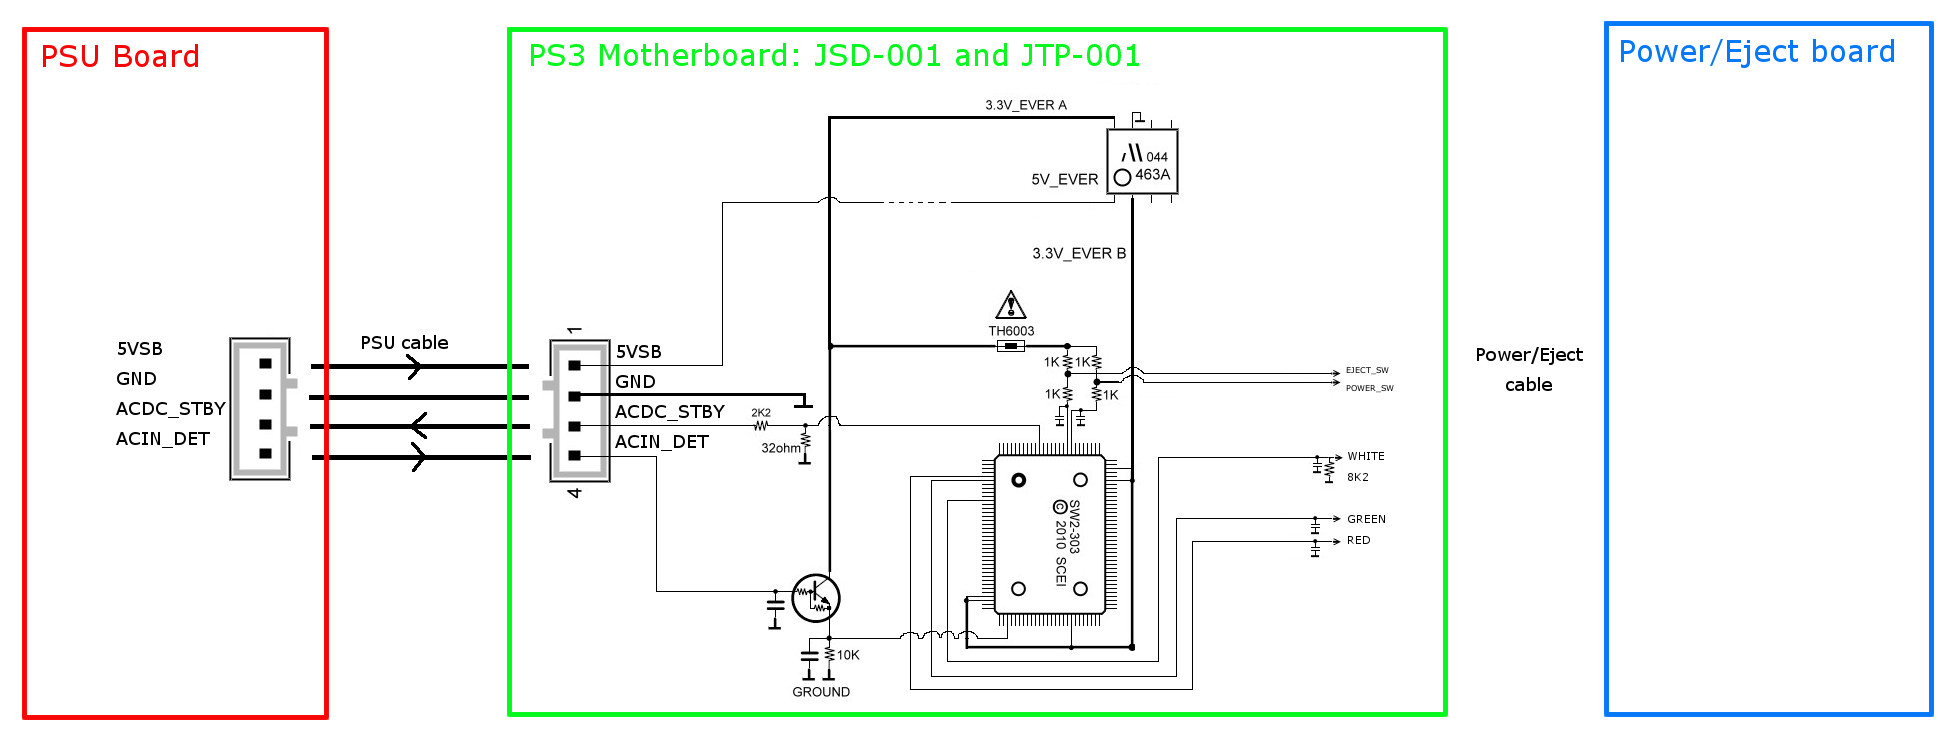 hight resolution of xbox one controller circuit board schematic wii remote original xbox controller wiring diagram xbox controller wire